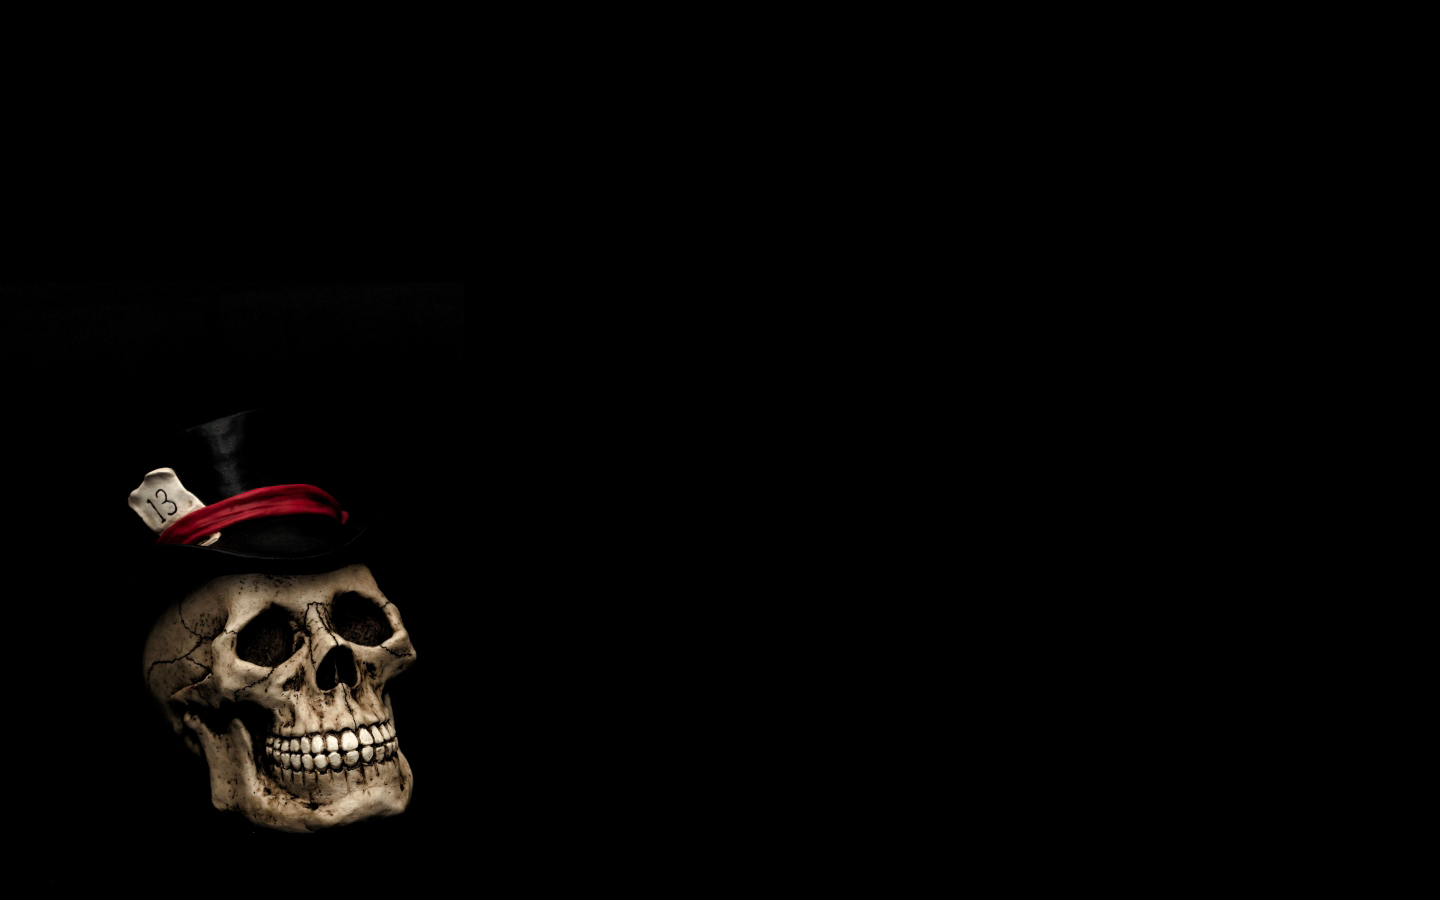 3D Skull Wallpapers   HD Wallpapers Chainimage 1440x900